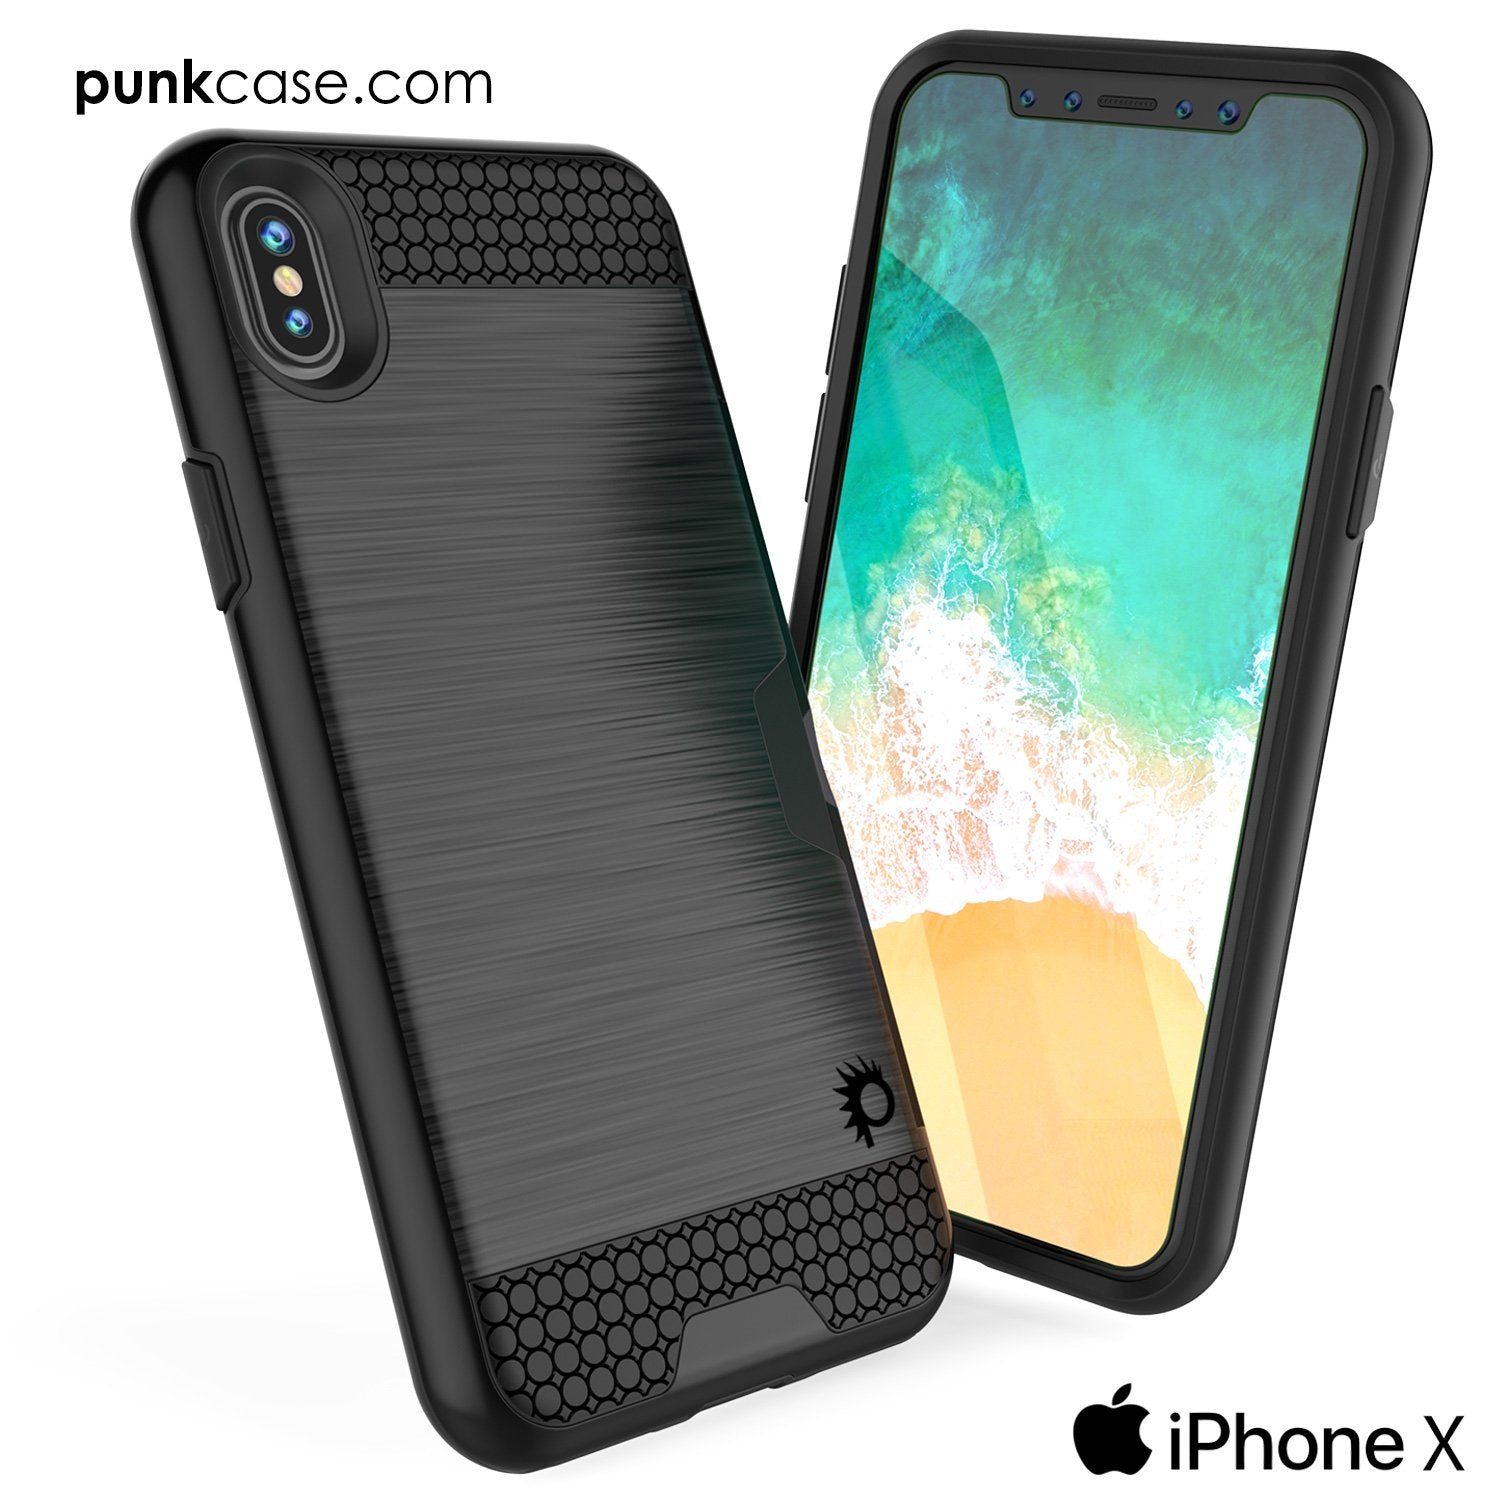 iPhone X Case, PUNKcase [SLOT Series] Slim Fit Dual-Layer Armor Cover & Tempered Glass PUNKSHIELD Screen Protector for Apple iPhone X [Black]